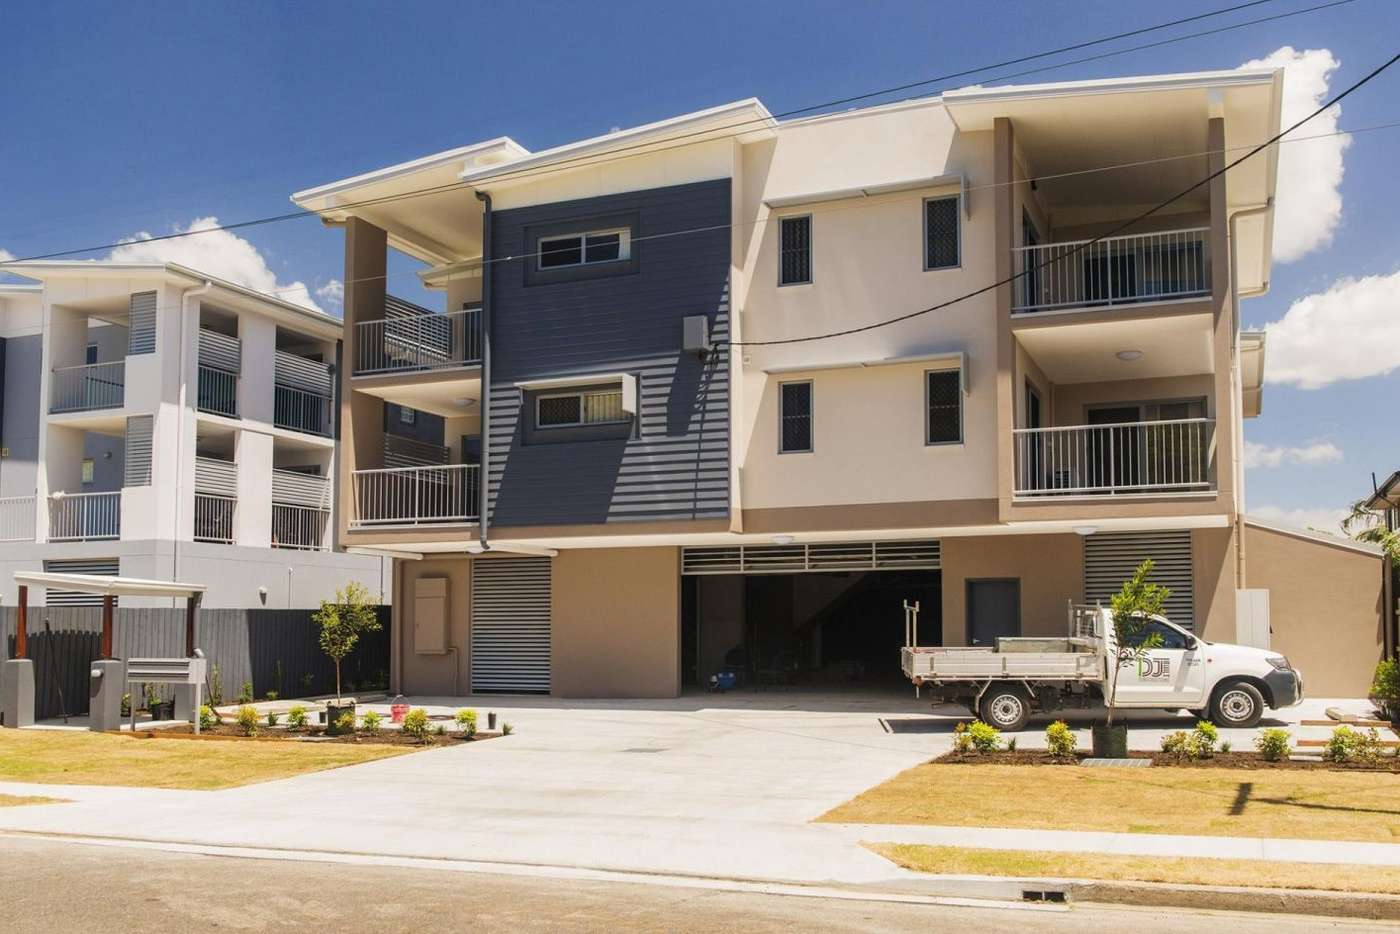 Main view of Homely apartment listing, 6/48 Lovegrove Street, Zillmere QLD 4034